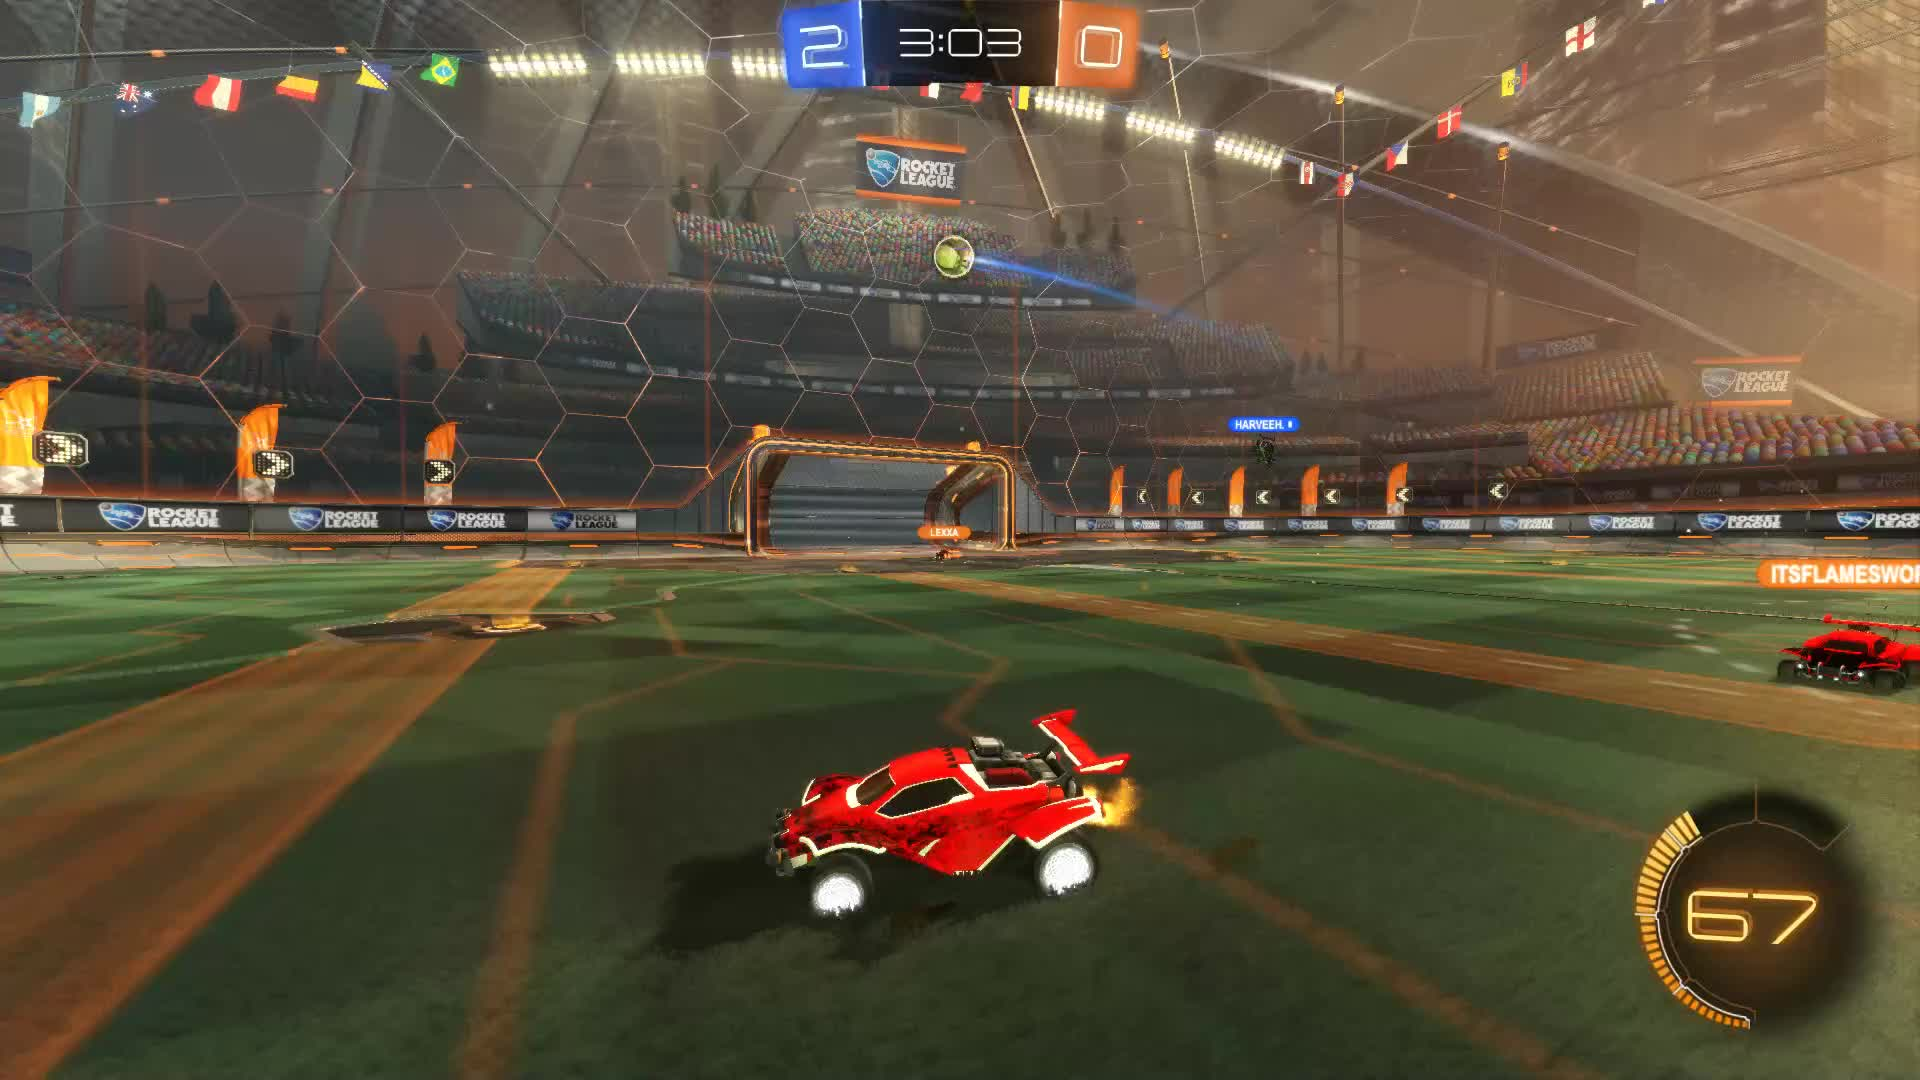 Gif Your Game, GifYourGame, Goal, Rocket League, RocketLeague, shimmy, Goal 3: shimmy GIFs